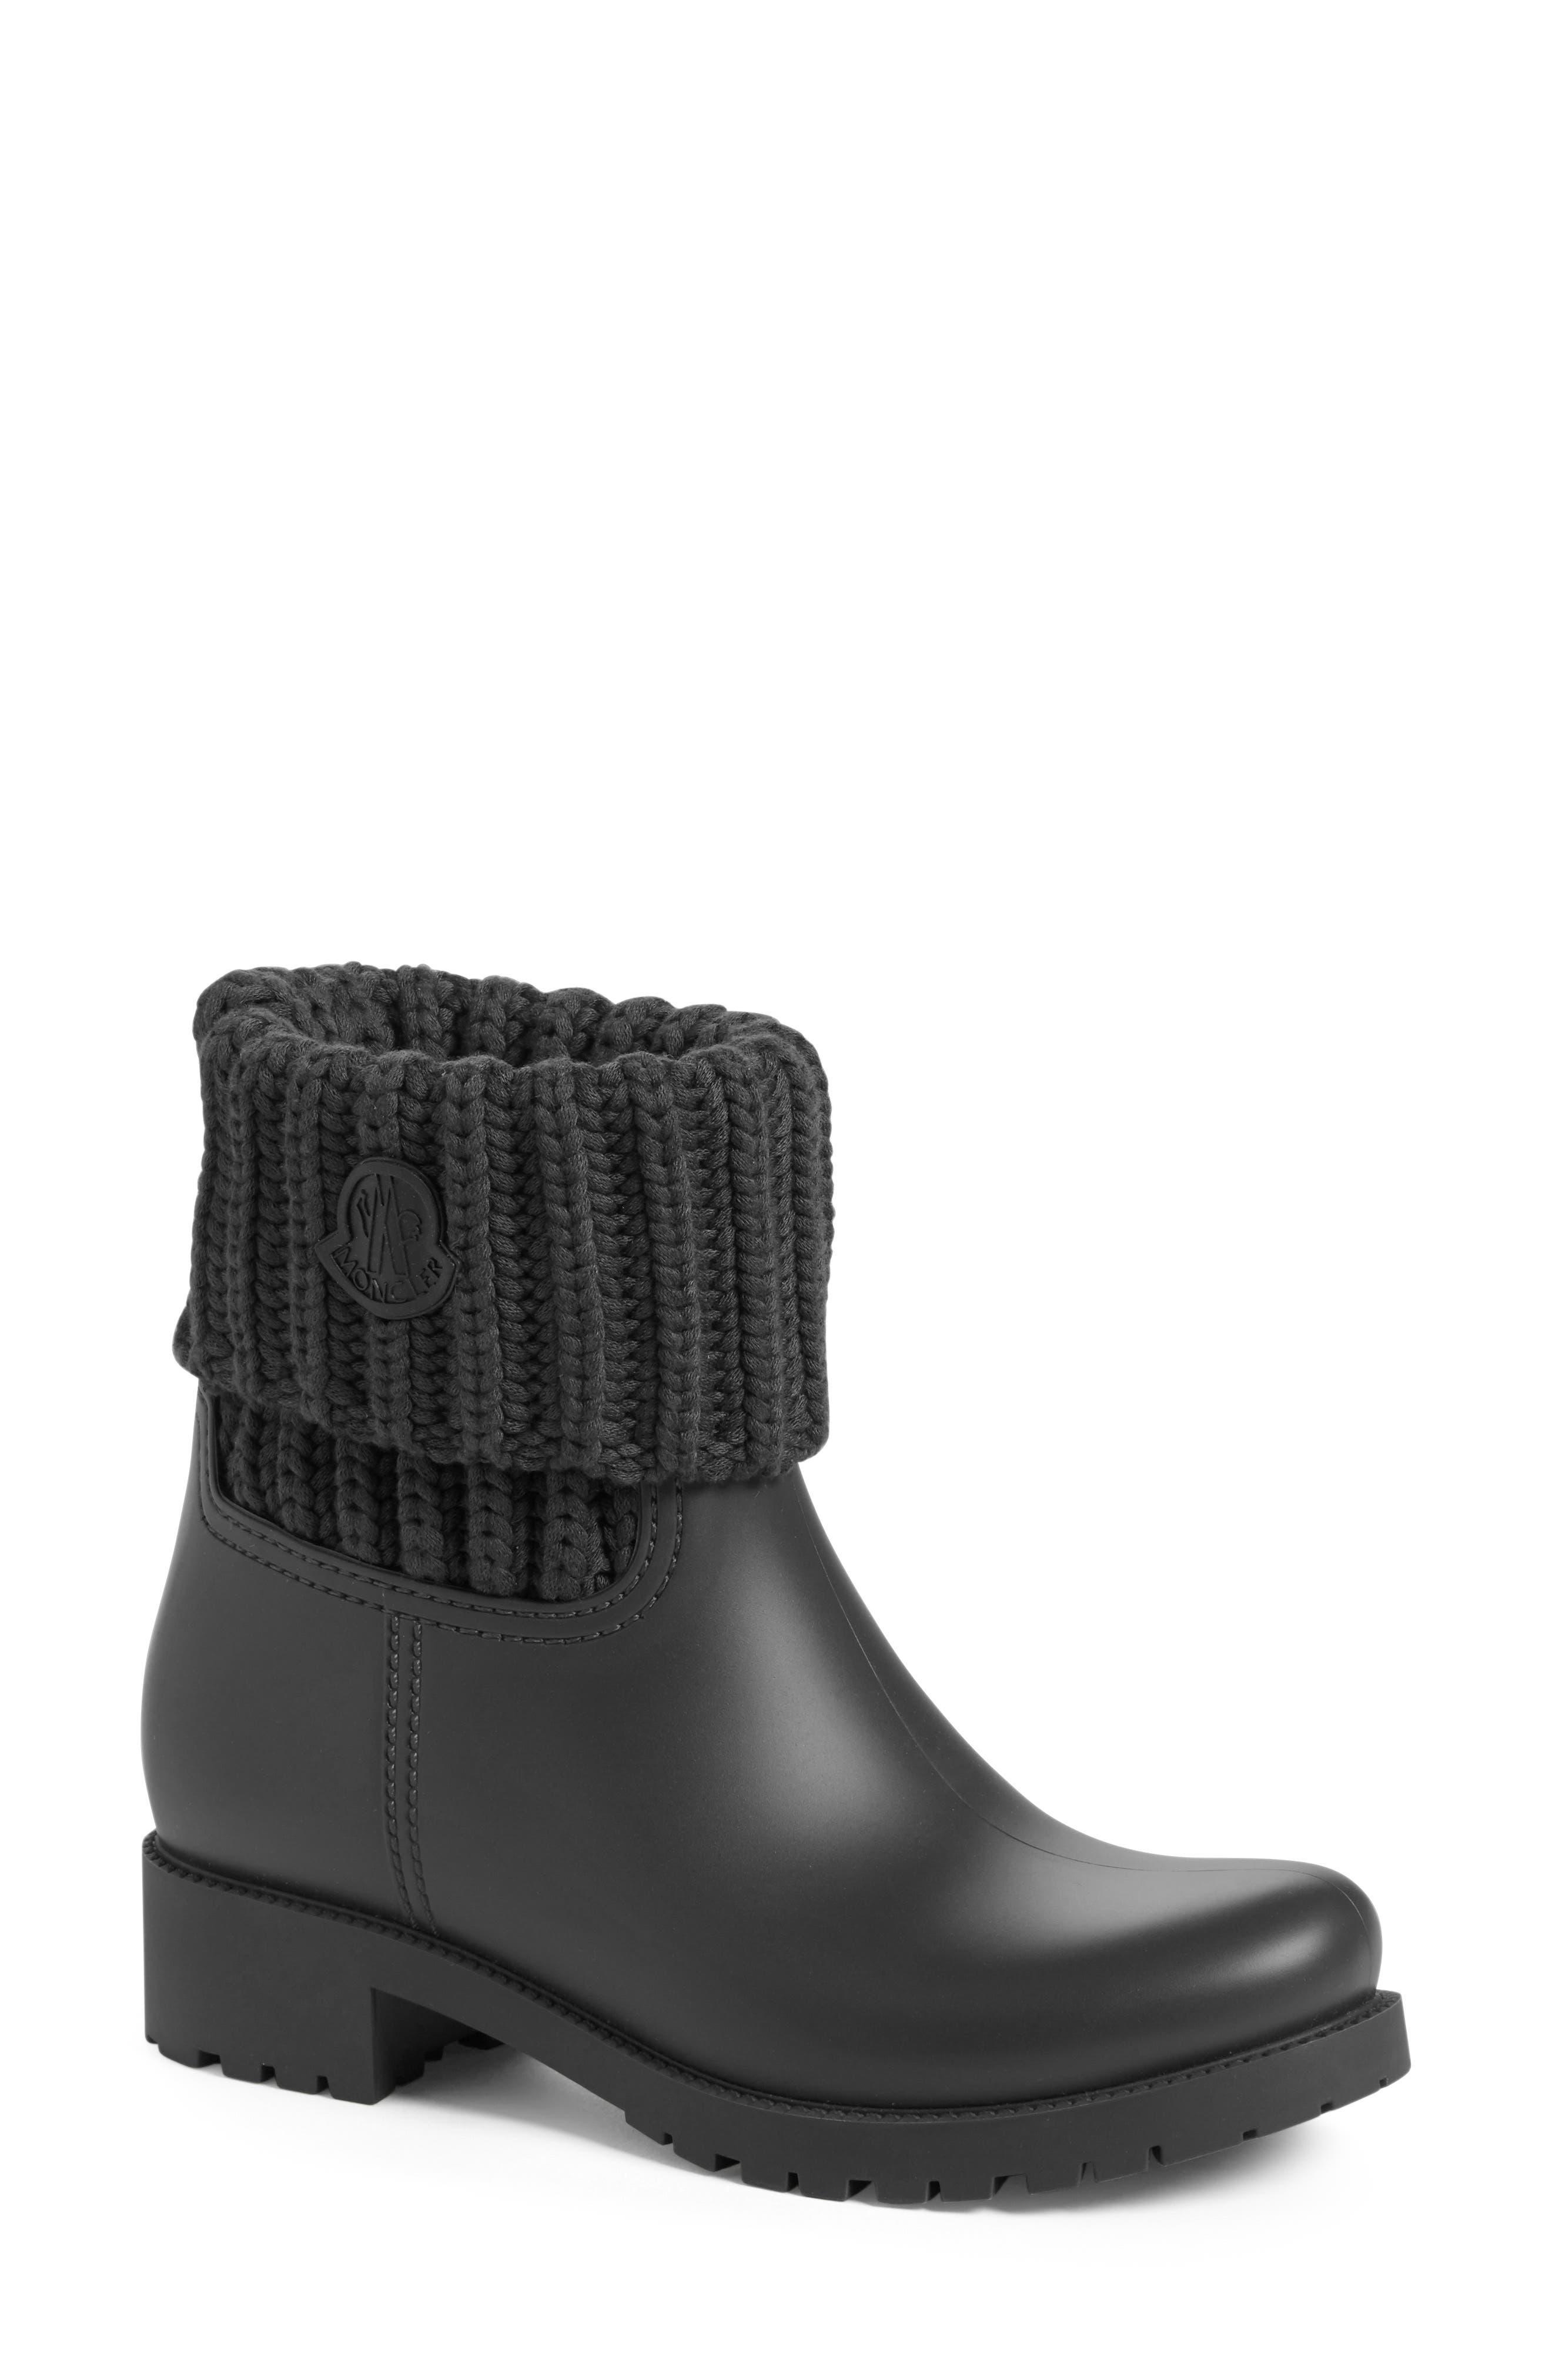 Alternate Image 1 Selected - Moncler 'Ginette' Knit Cuff Leather Rain Boot (Women)